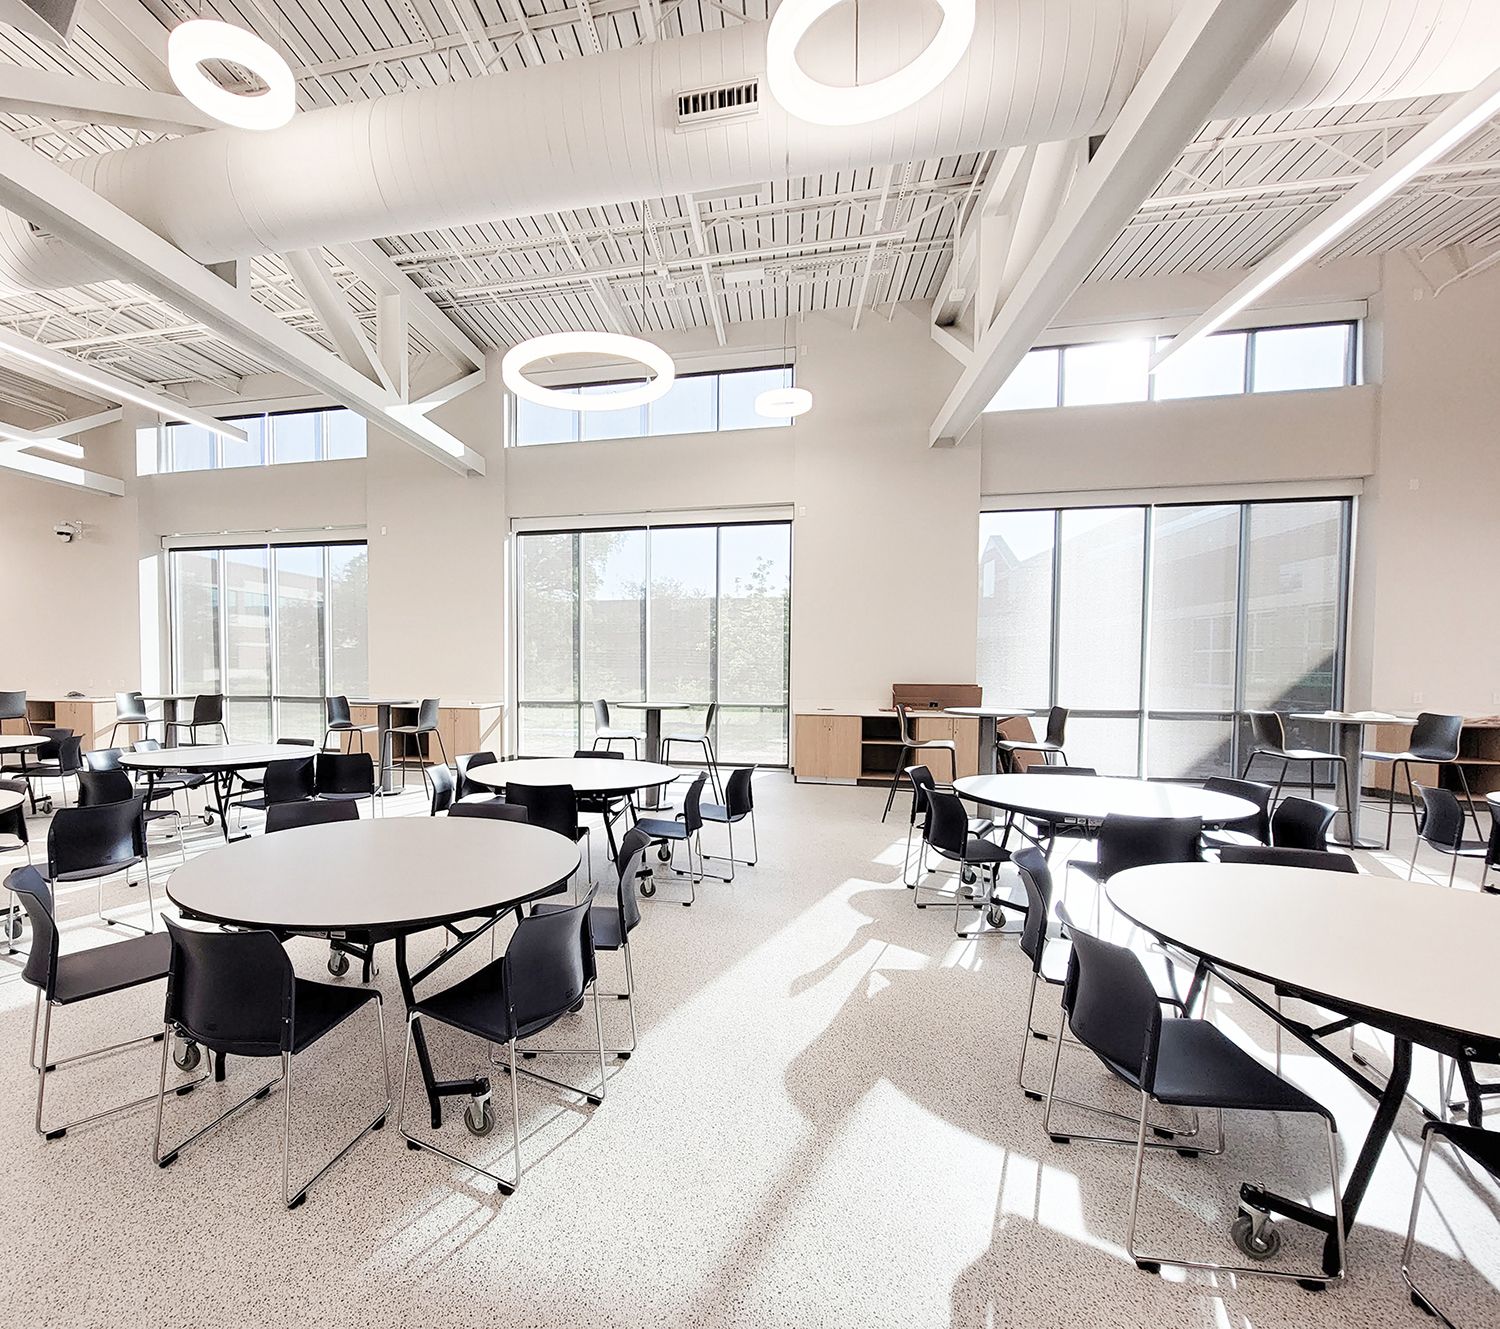 School cafeteria with roller shades